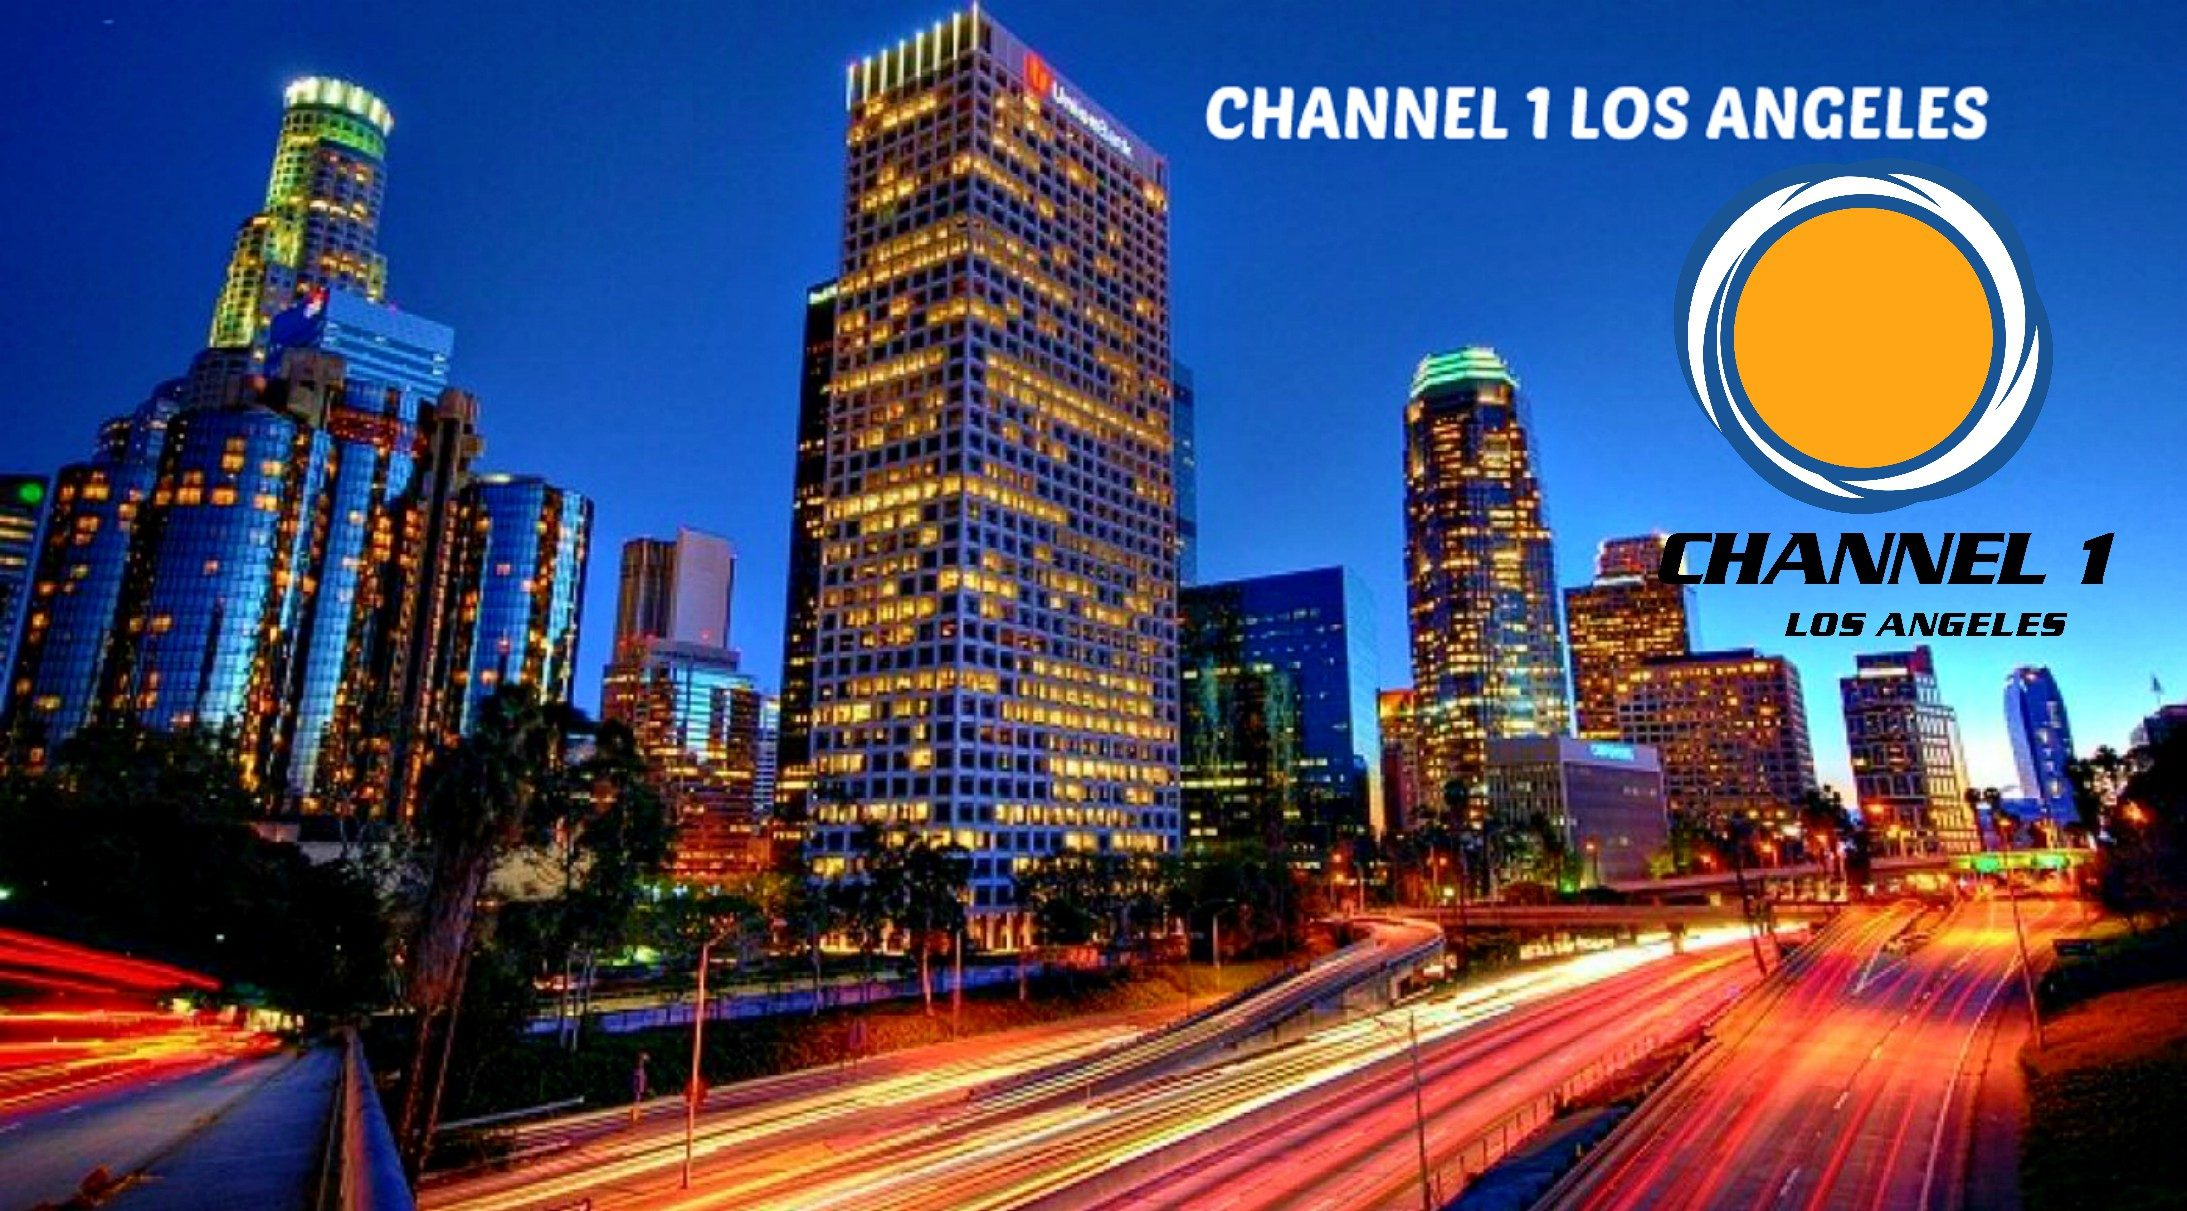 Channel 1 Los Angeles